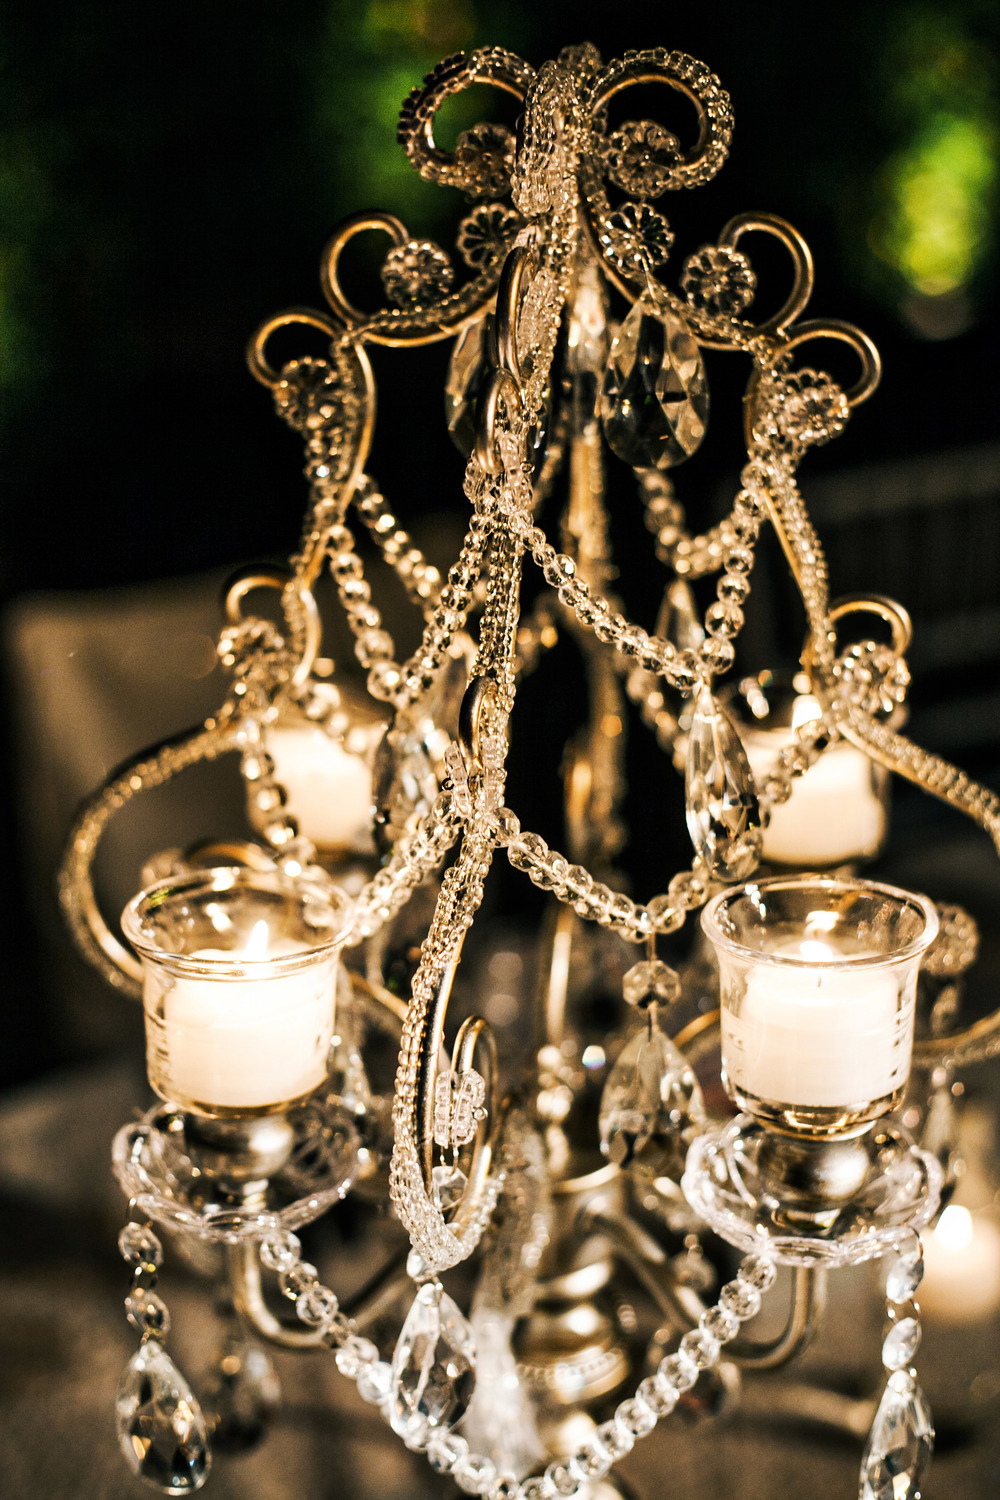 39. LS - Head table, wedding chandaliers, chandaliers & candles, modern romantic wedding, sparkle wedding, sequin linens, summer wedding.jpg